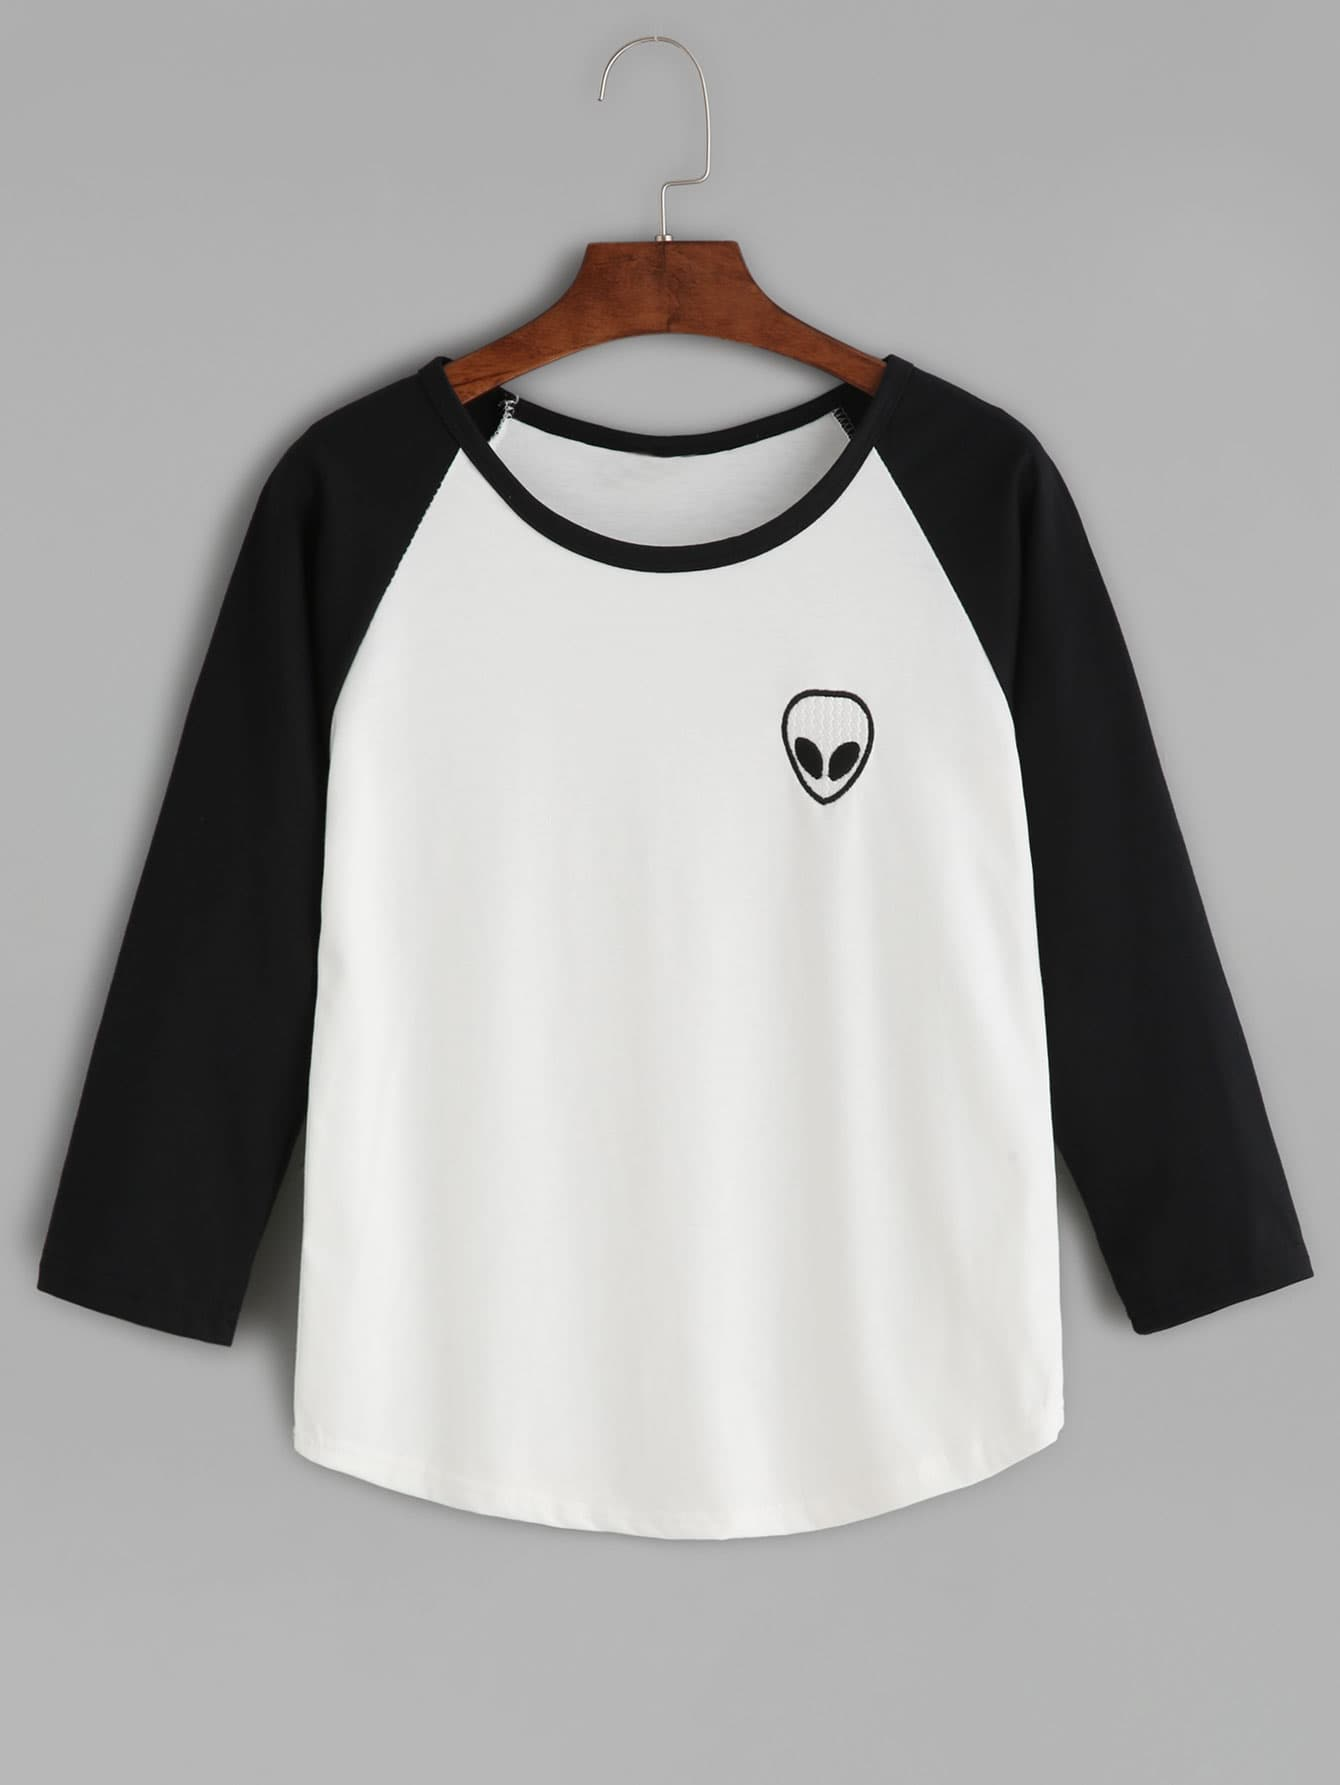 Two Tone Graphic Embroidered Raglan Sleeve T-shirt tee160819122